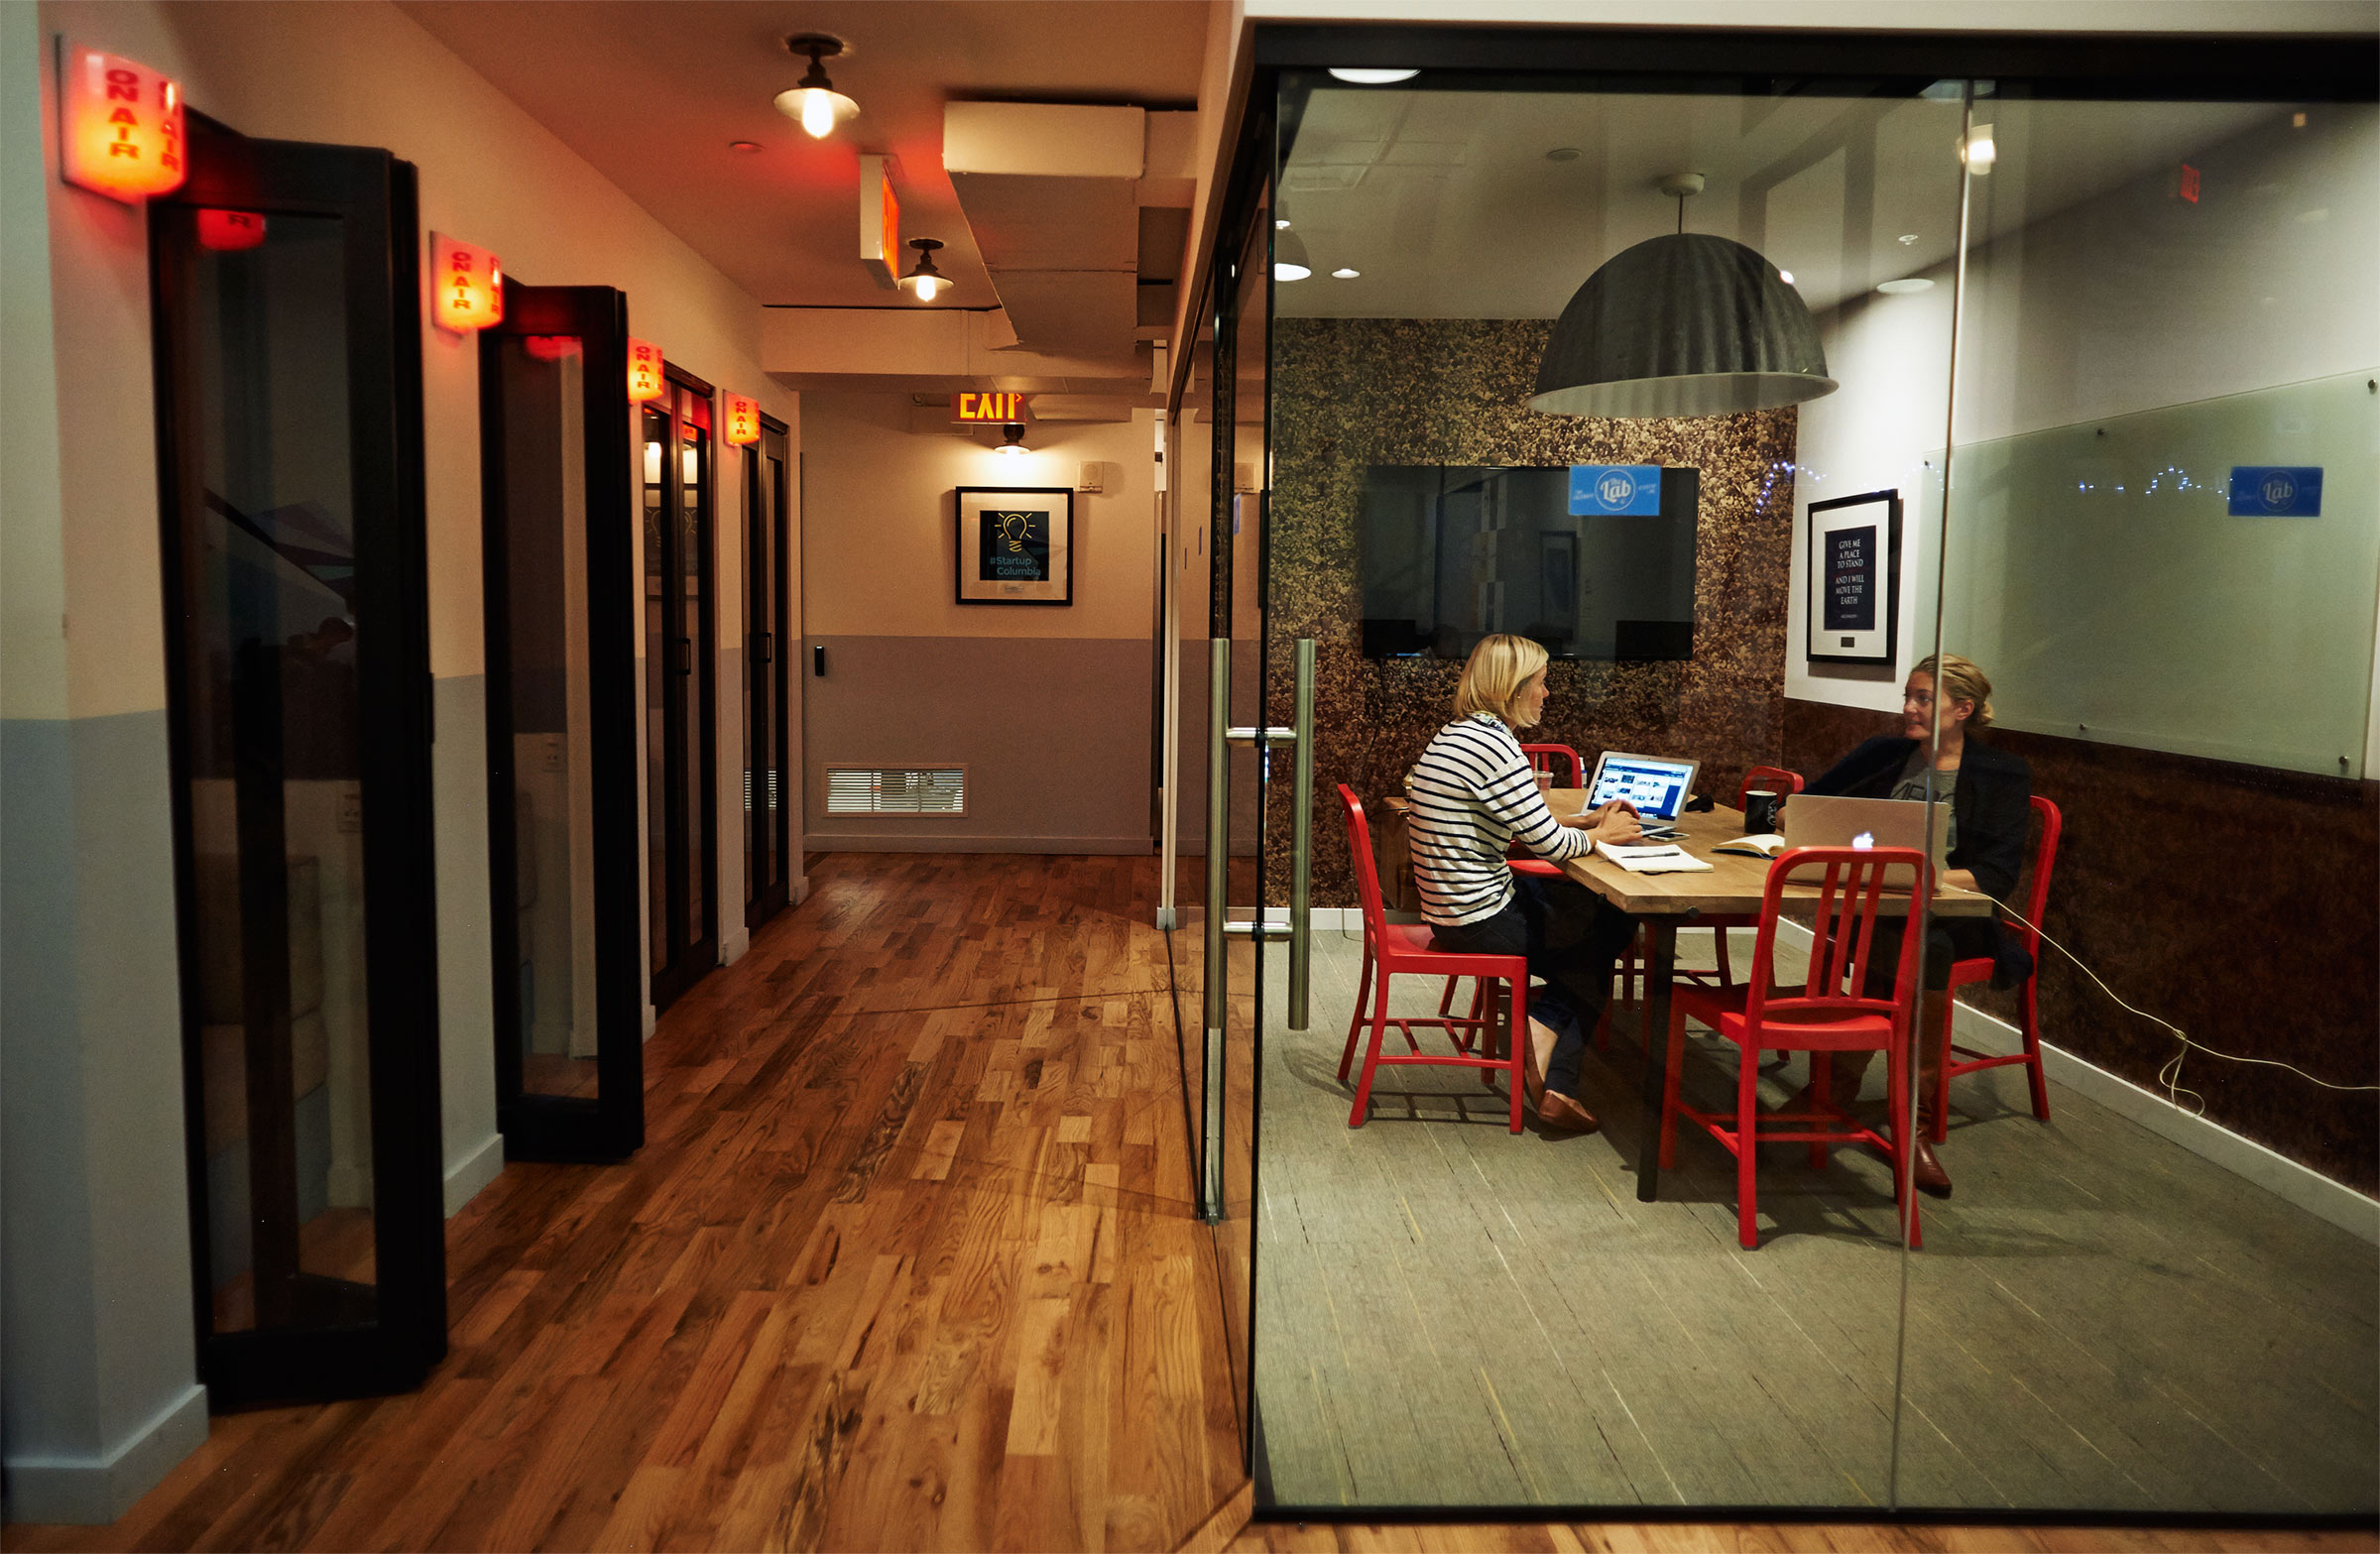 05_Jamel_Toppin_WeWork_Forbes_0032